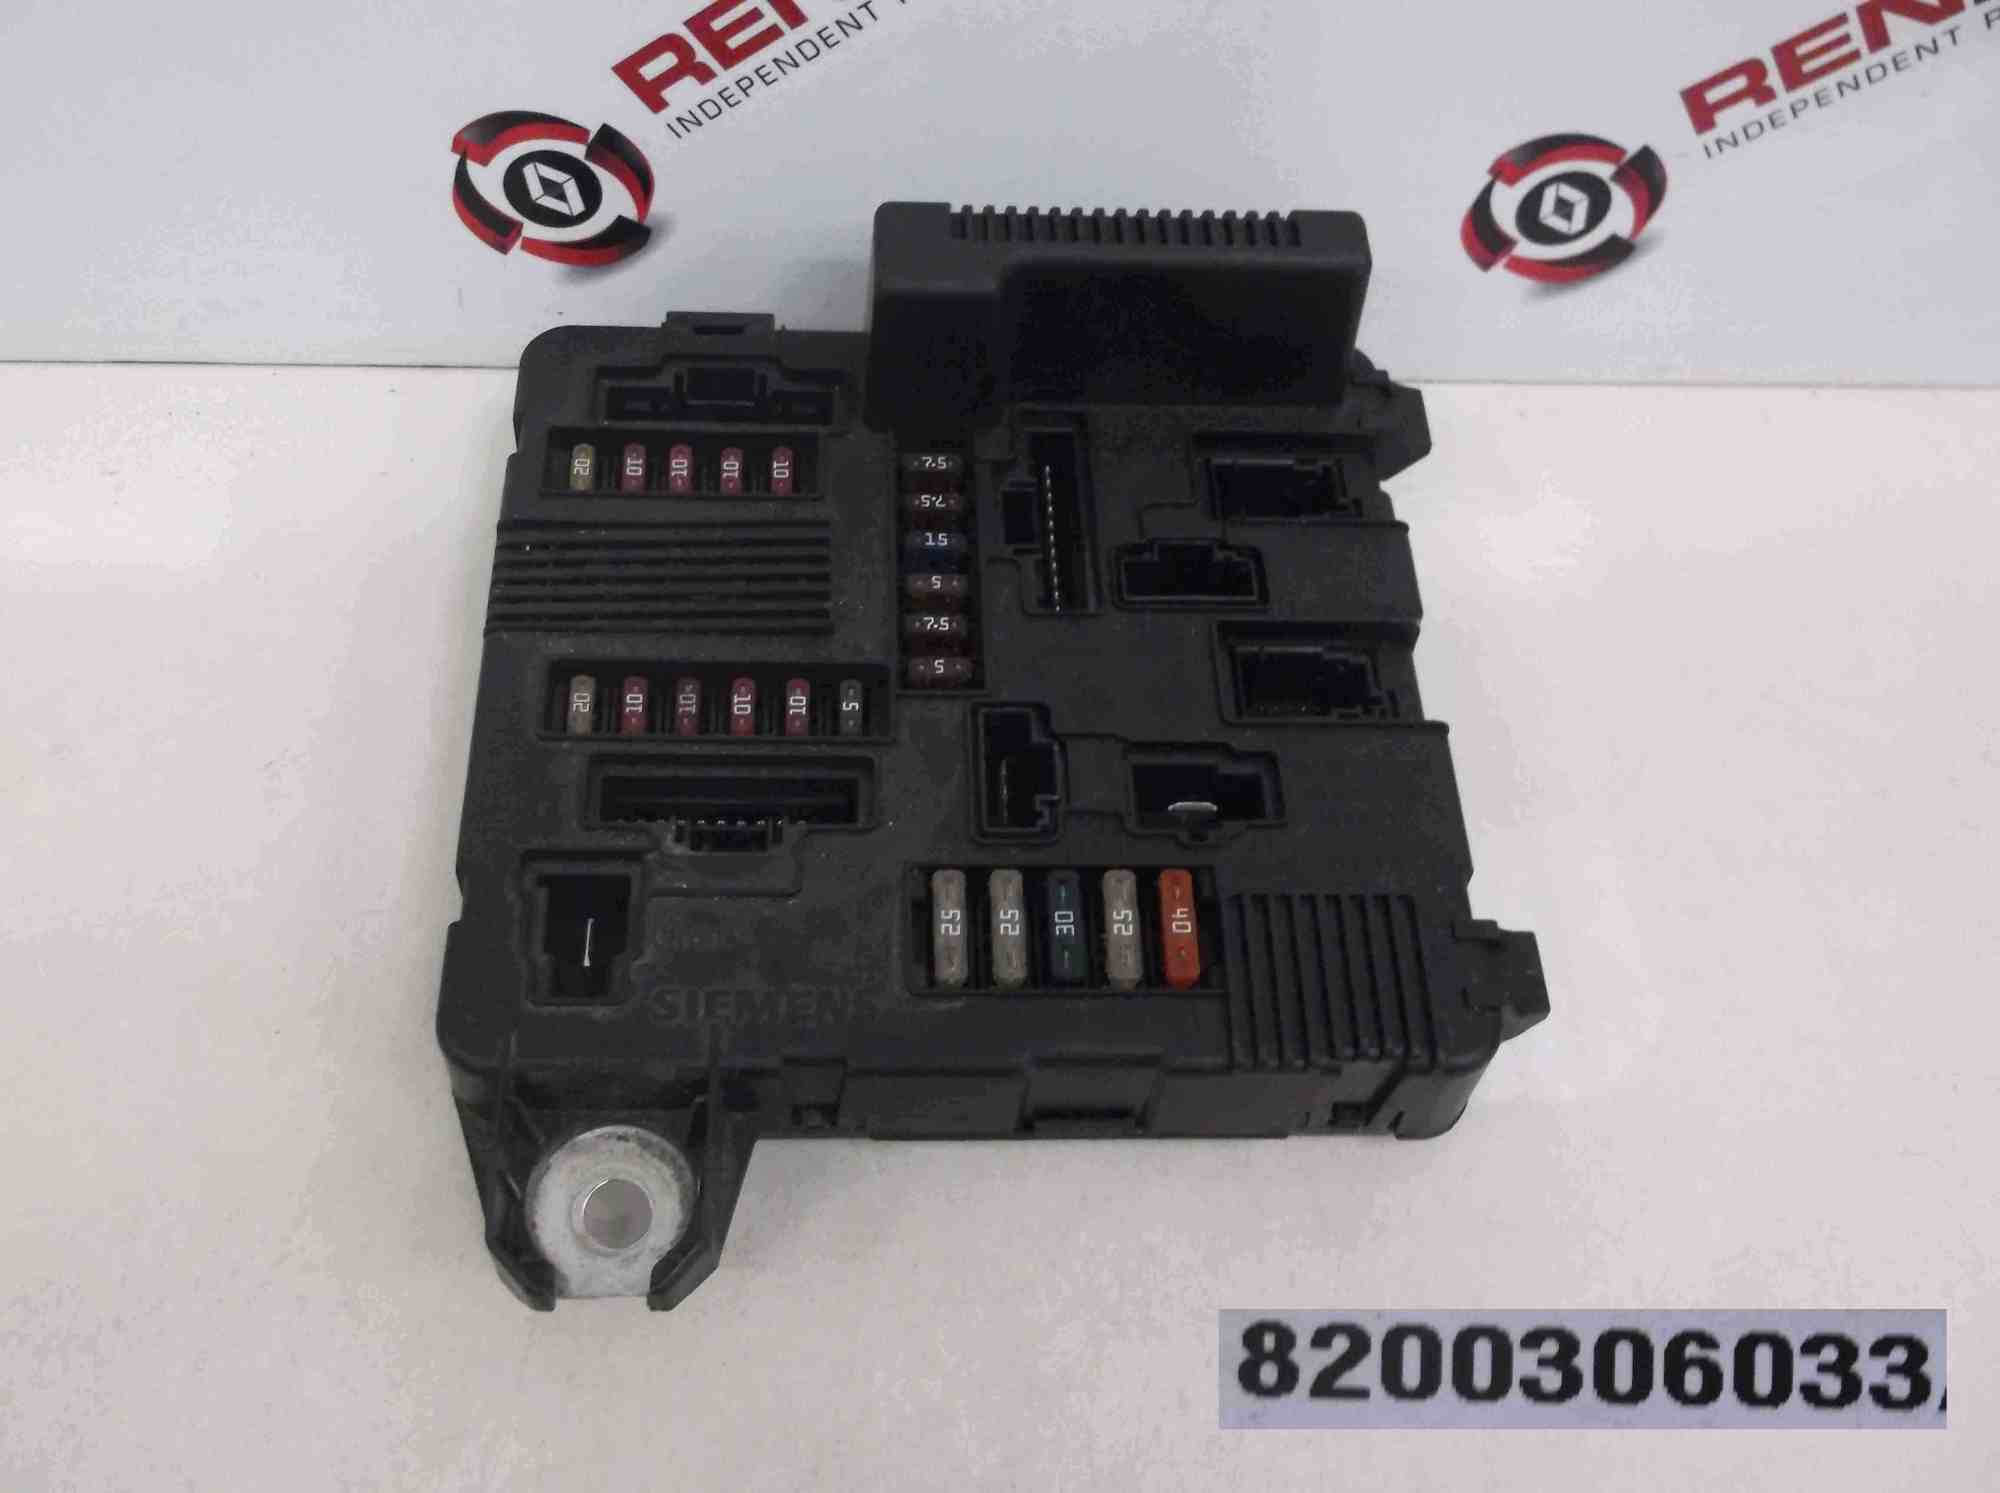 hight resolution of renault megane scenic 2002 2006 engine bay fuse box upc 8200306033 renault megane fuse box in engine bay